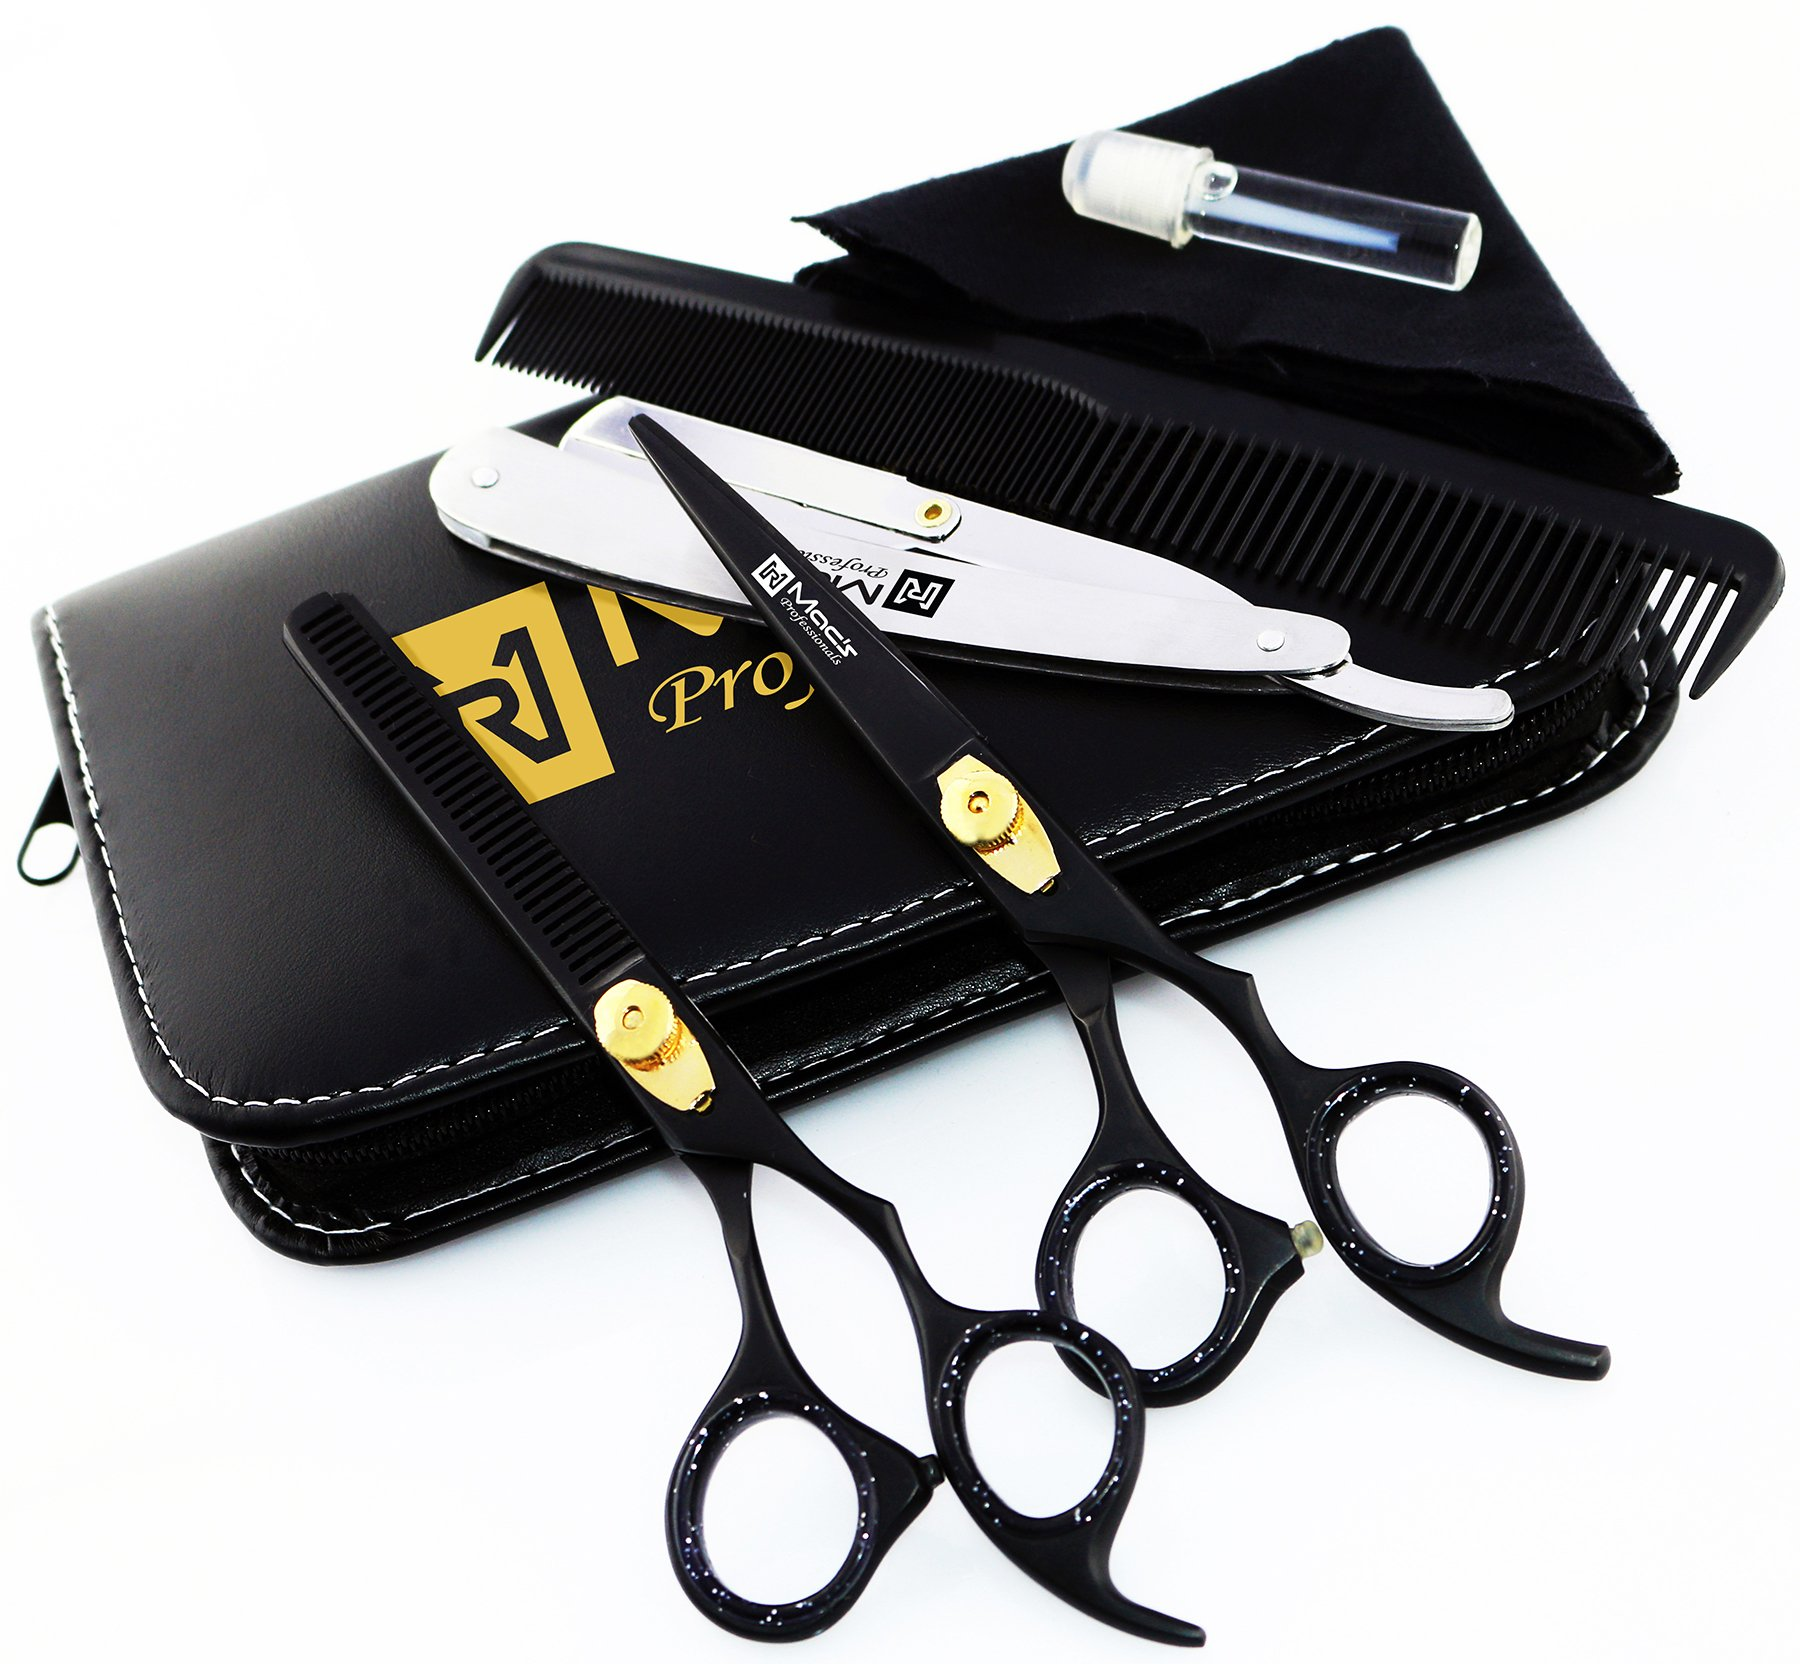 Macs Professional Black & Gold Plated Beauty full Double Tone Combination Razors Edge Barber Hair Cutting Scissor/Shear Set Made Of 440 Japanese Stainless Steel 6.5'' -15043